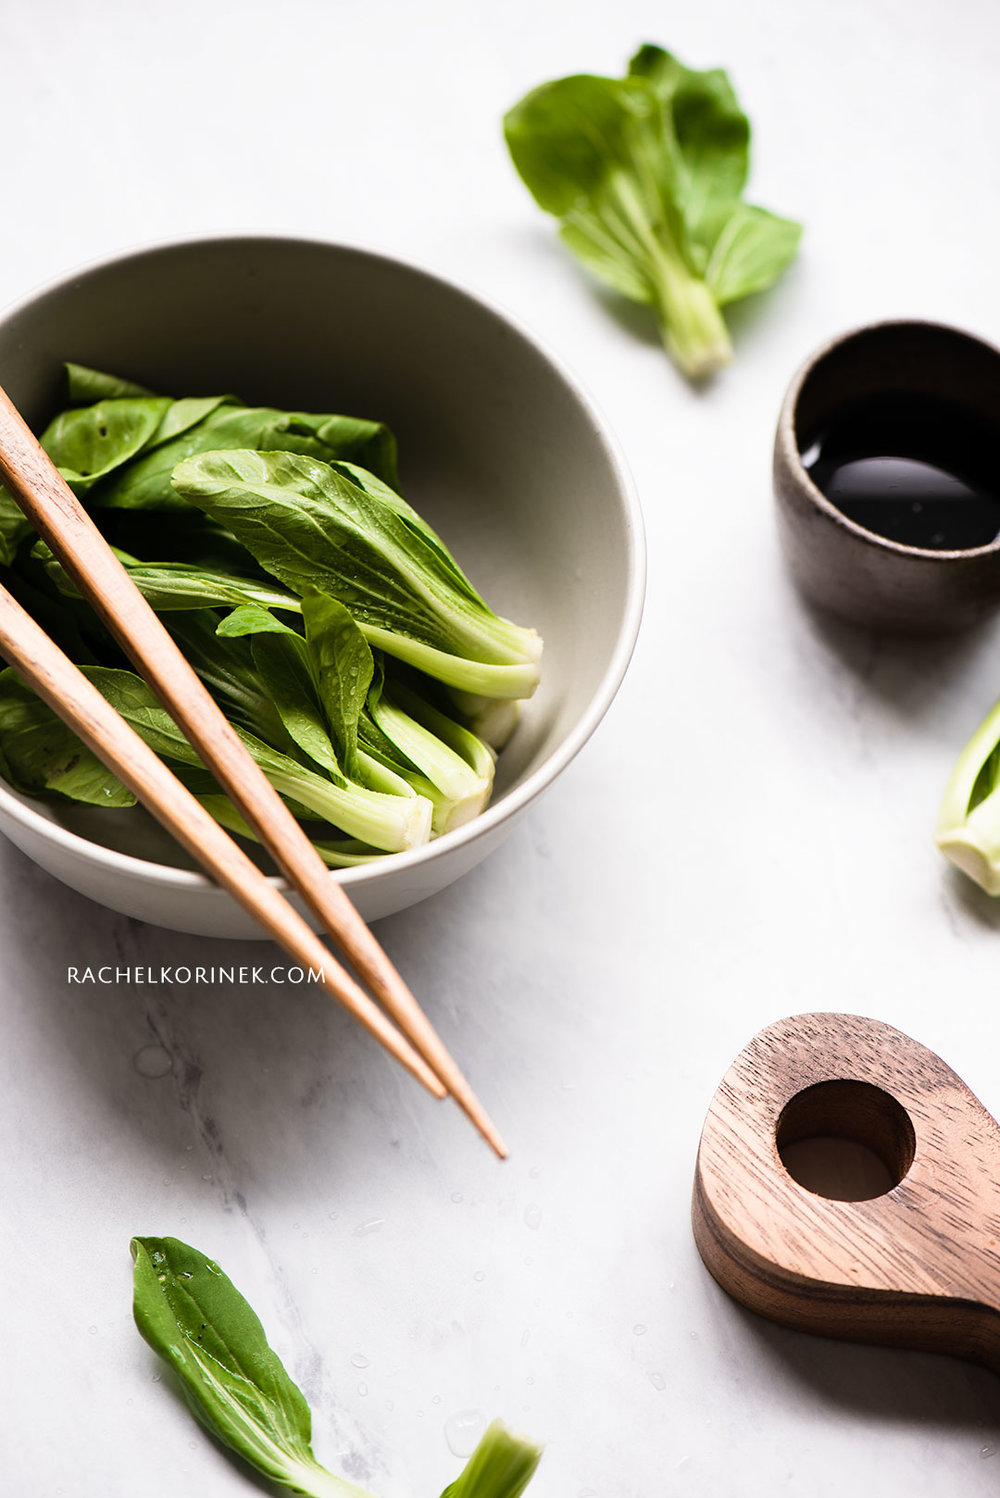 Rachel Korinek Food Photographer   Baby Bok Choy  Click to check out my latest food photography projects.  #twolovesstudio #beautifulcuisine #foodbloggerpro #foodphotography #learnfoodphotography #foodblogger #learnphotography #foodstyling #lightingtips #naturallight #foodphotographer